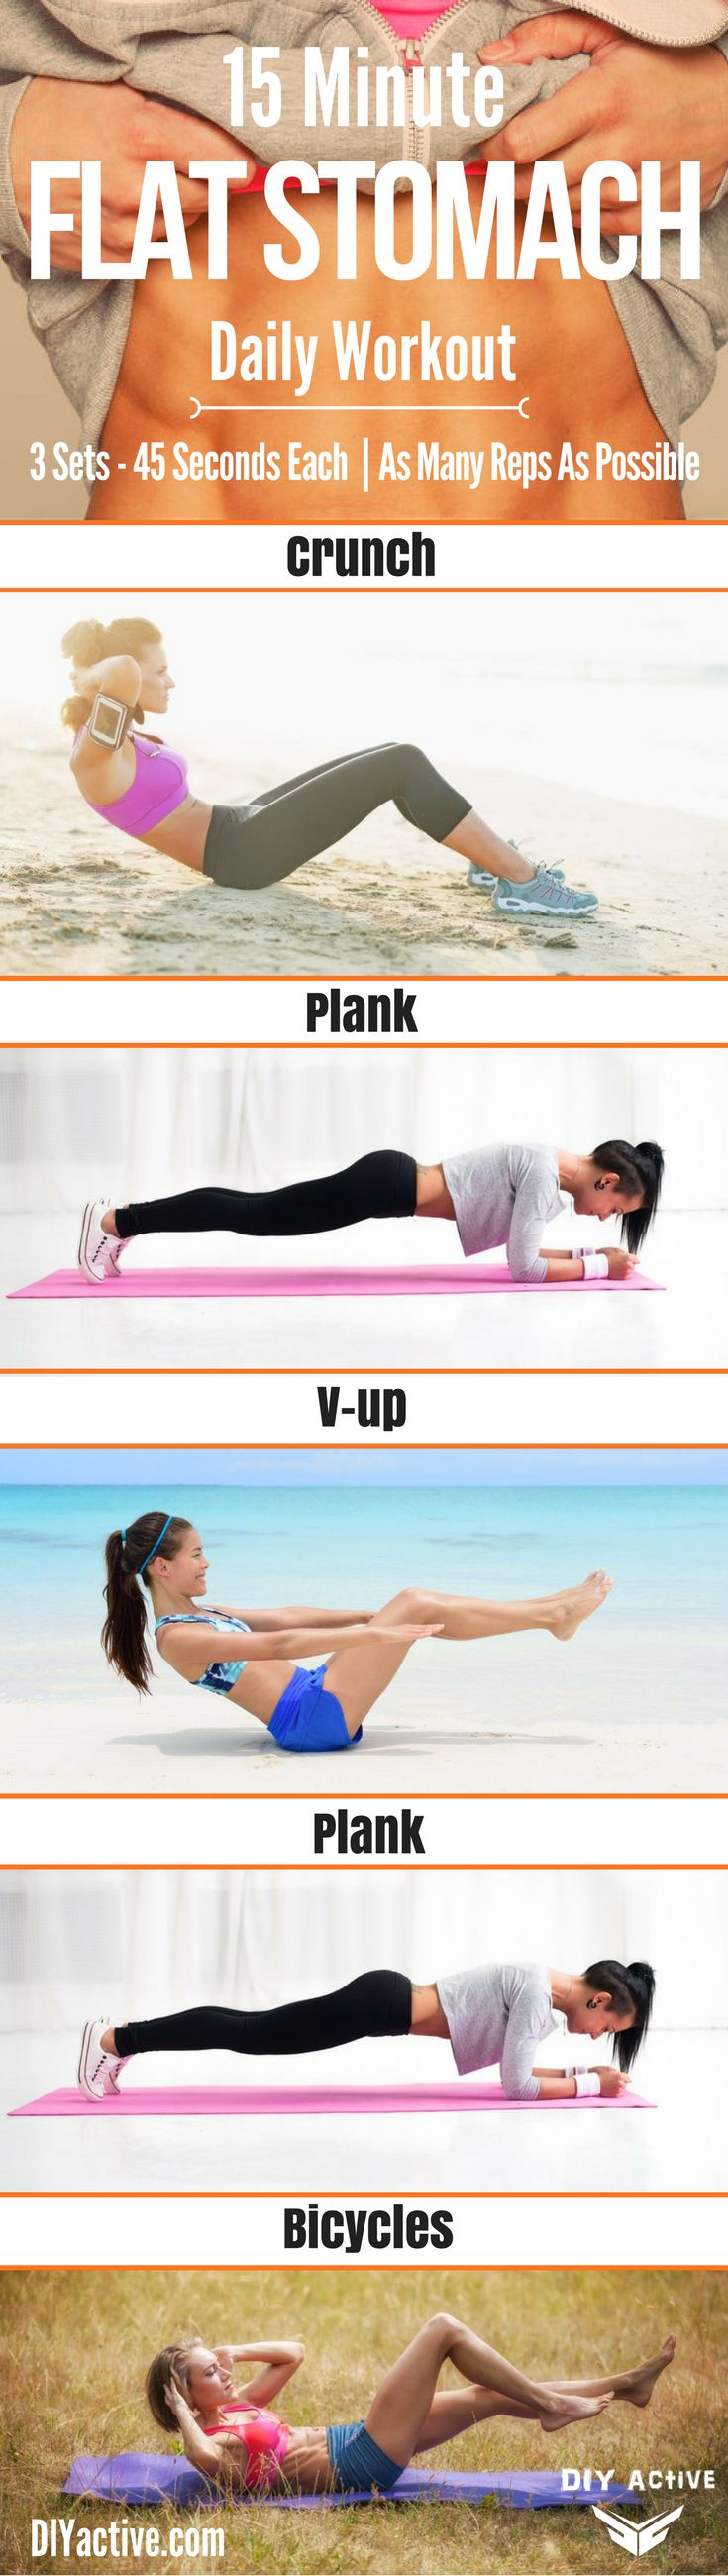 Get the ULTIMATE two week diet plan to go along with this quick, core workout! @DIYactiveHQ #workout